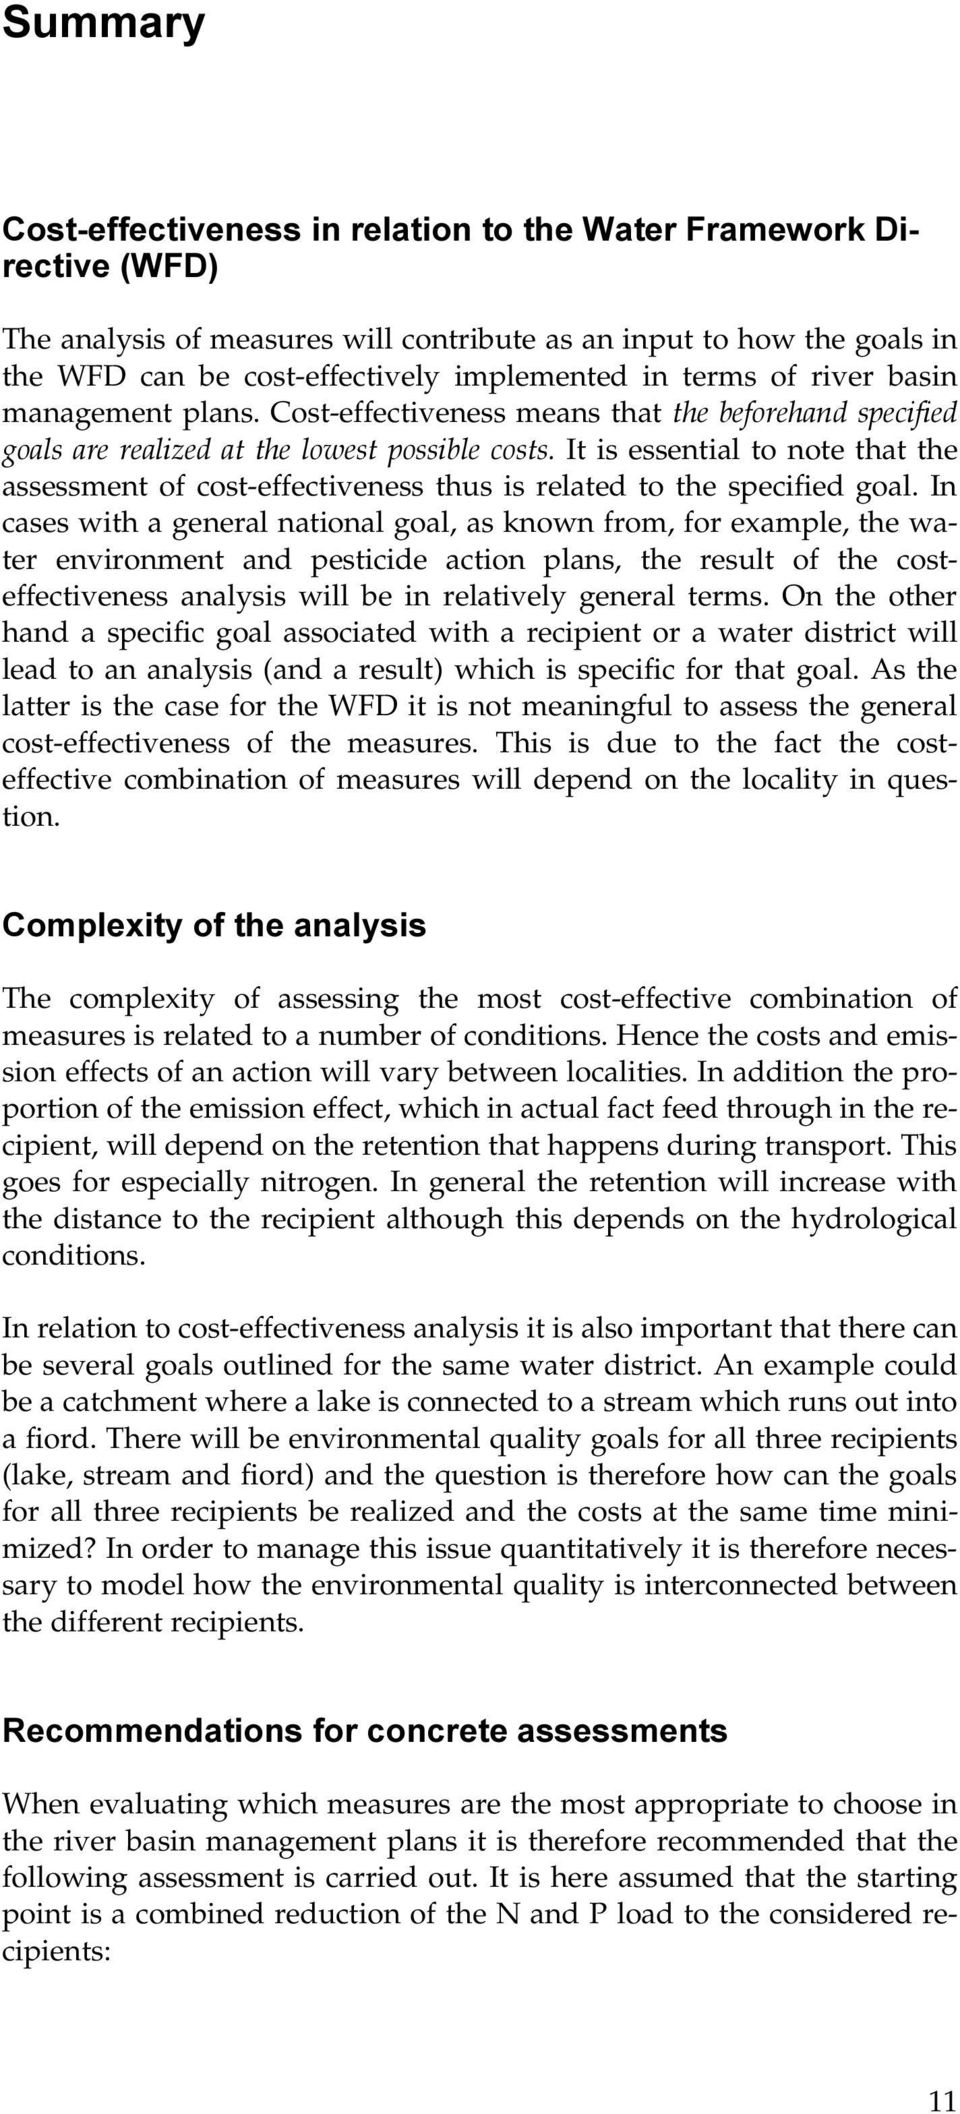 Cost-effectiveness means that WKHEHIRUHKDQGVSHFLILHG JRDOVDUHUHDOL]HGDWWKHORZHVWSRVVLEOHFRVWV It is essential to note that the assessment of cost-effectiveness thus is related to the specified goal.